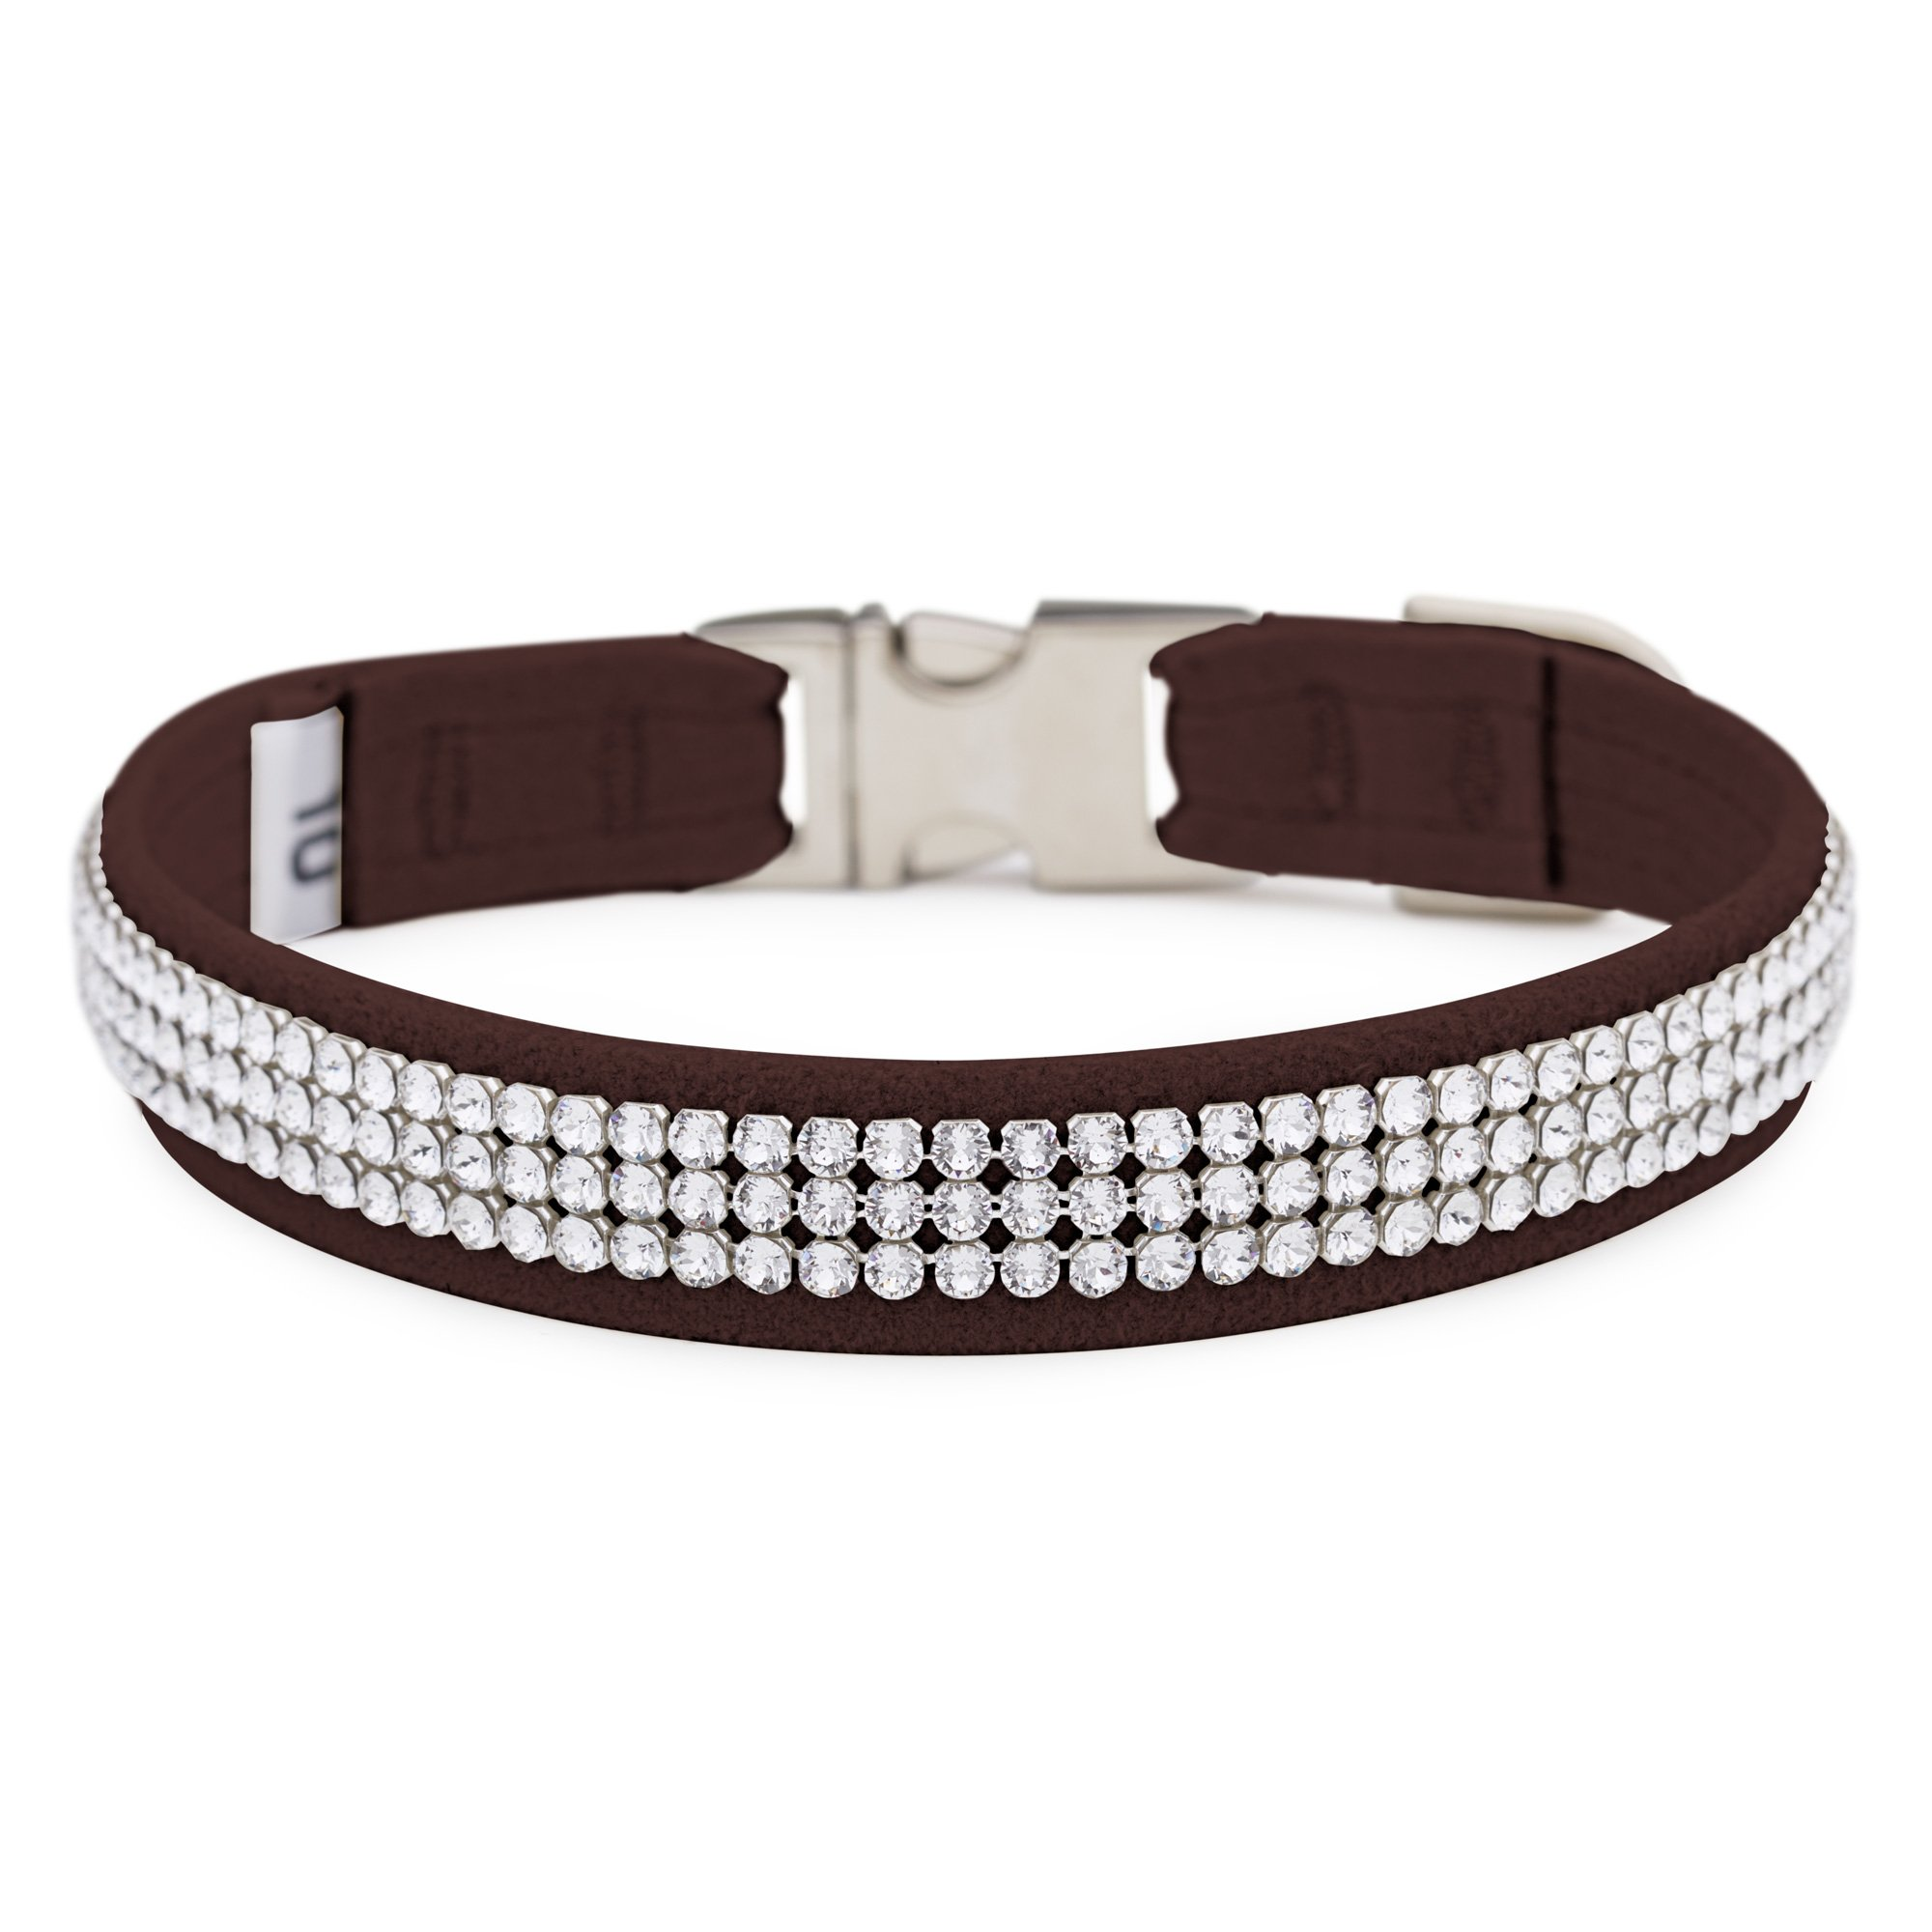 Chocolate 3 Row Giltmore Perfect Fit Collar